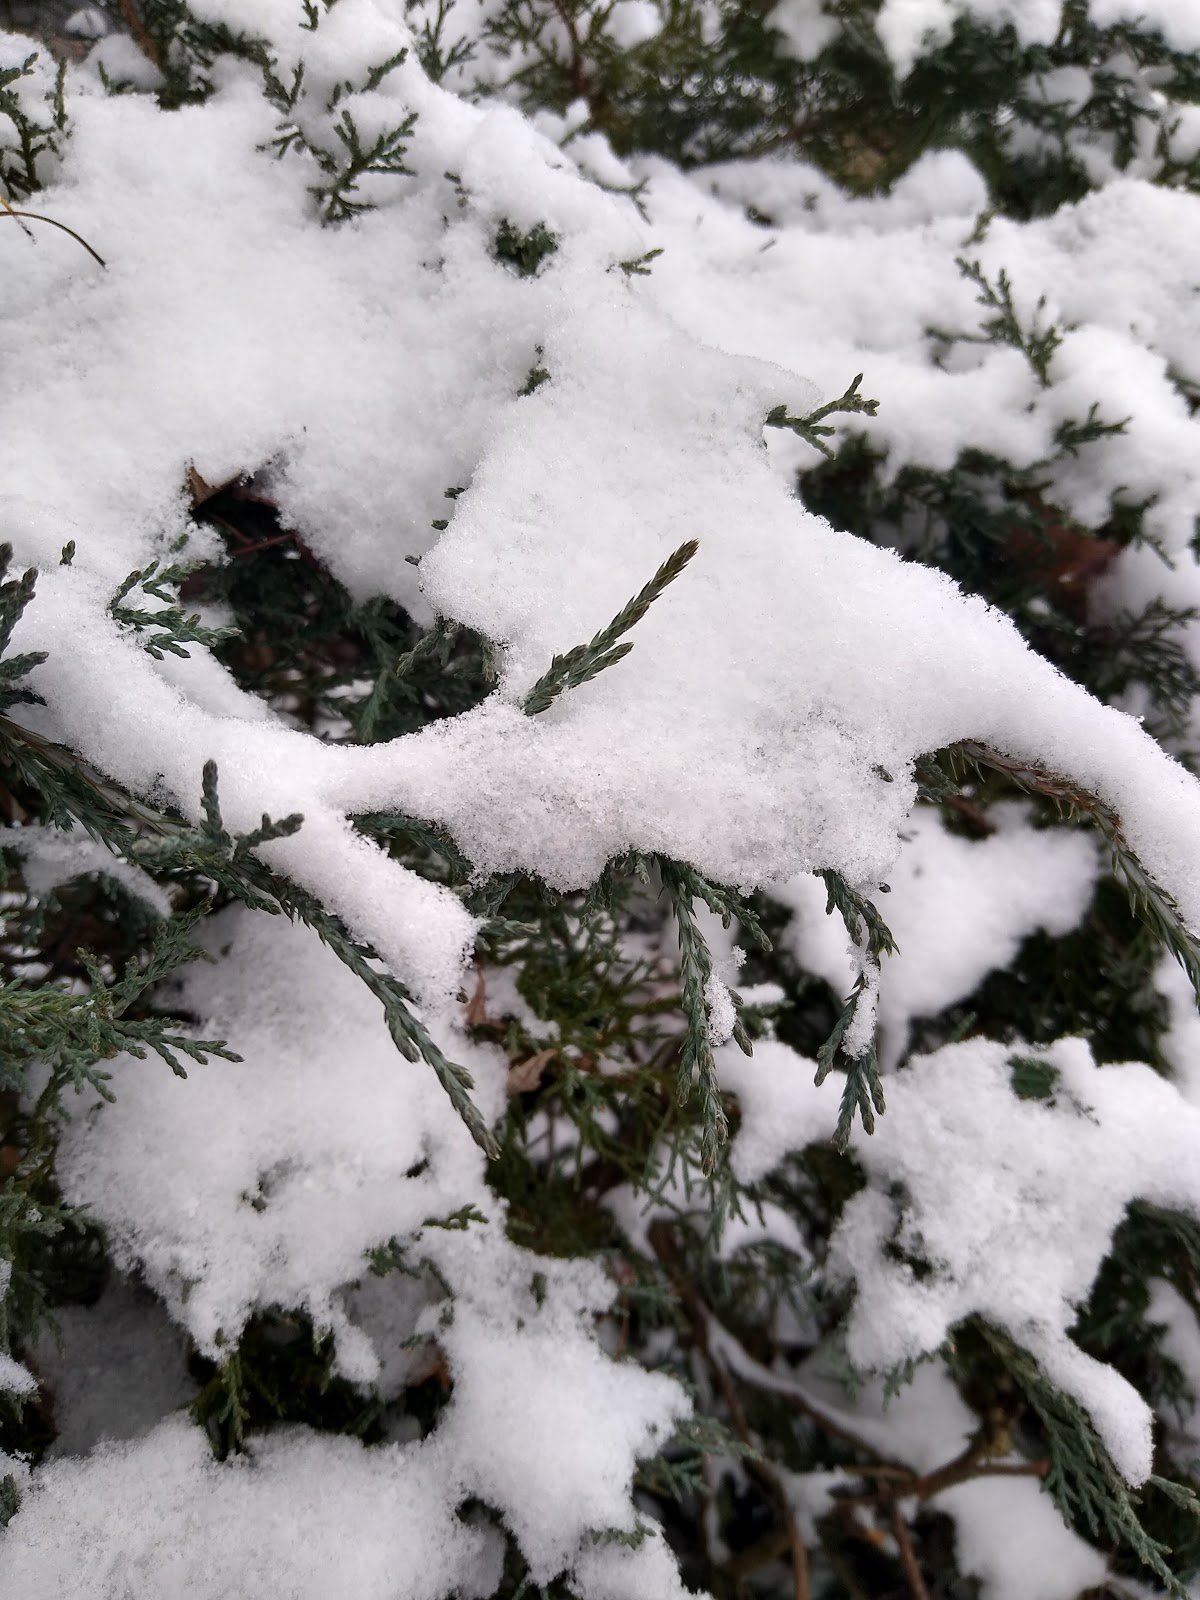 shrub covered in snow